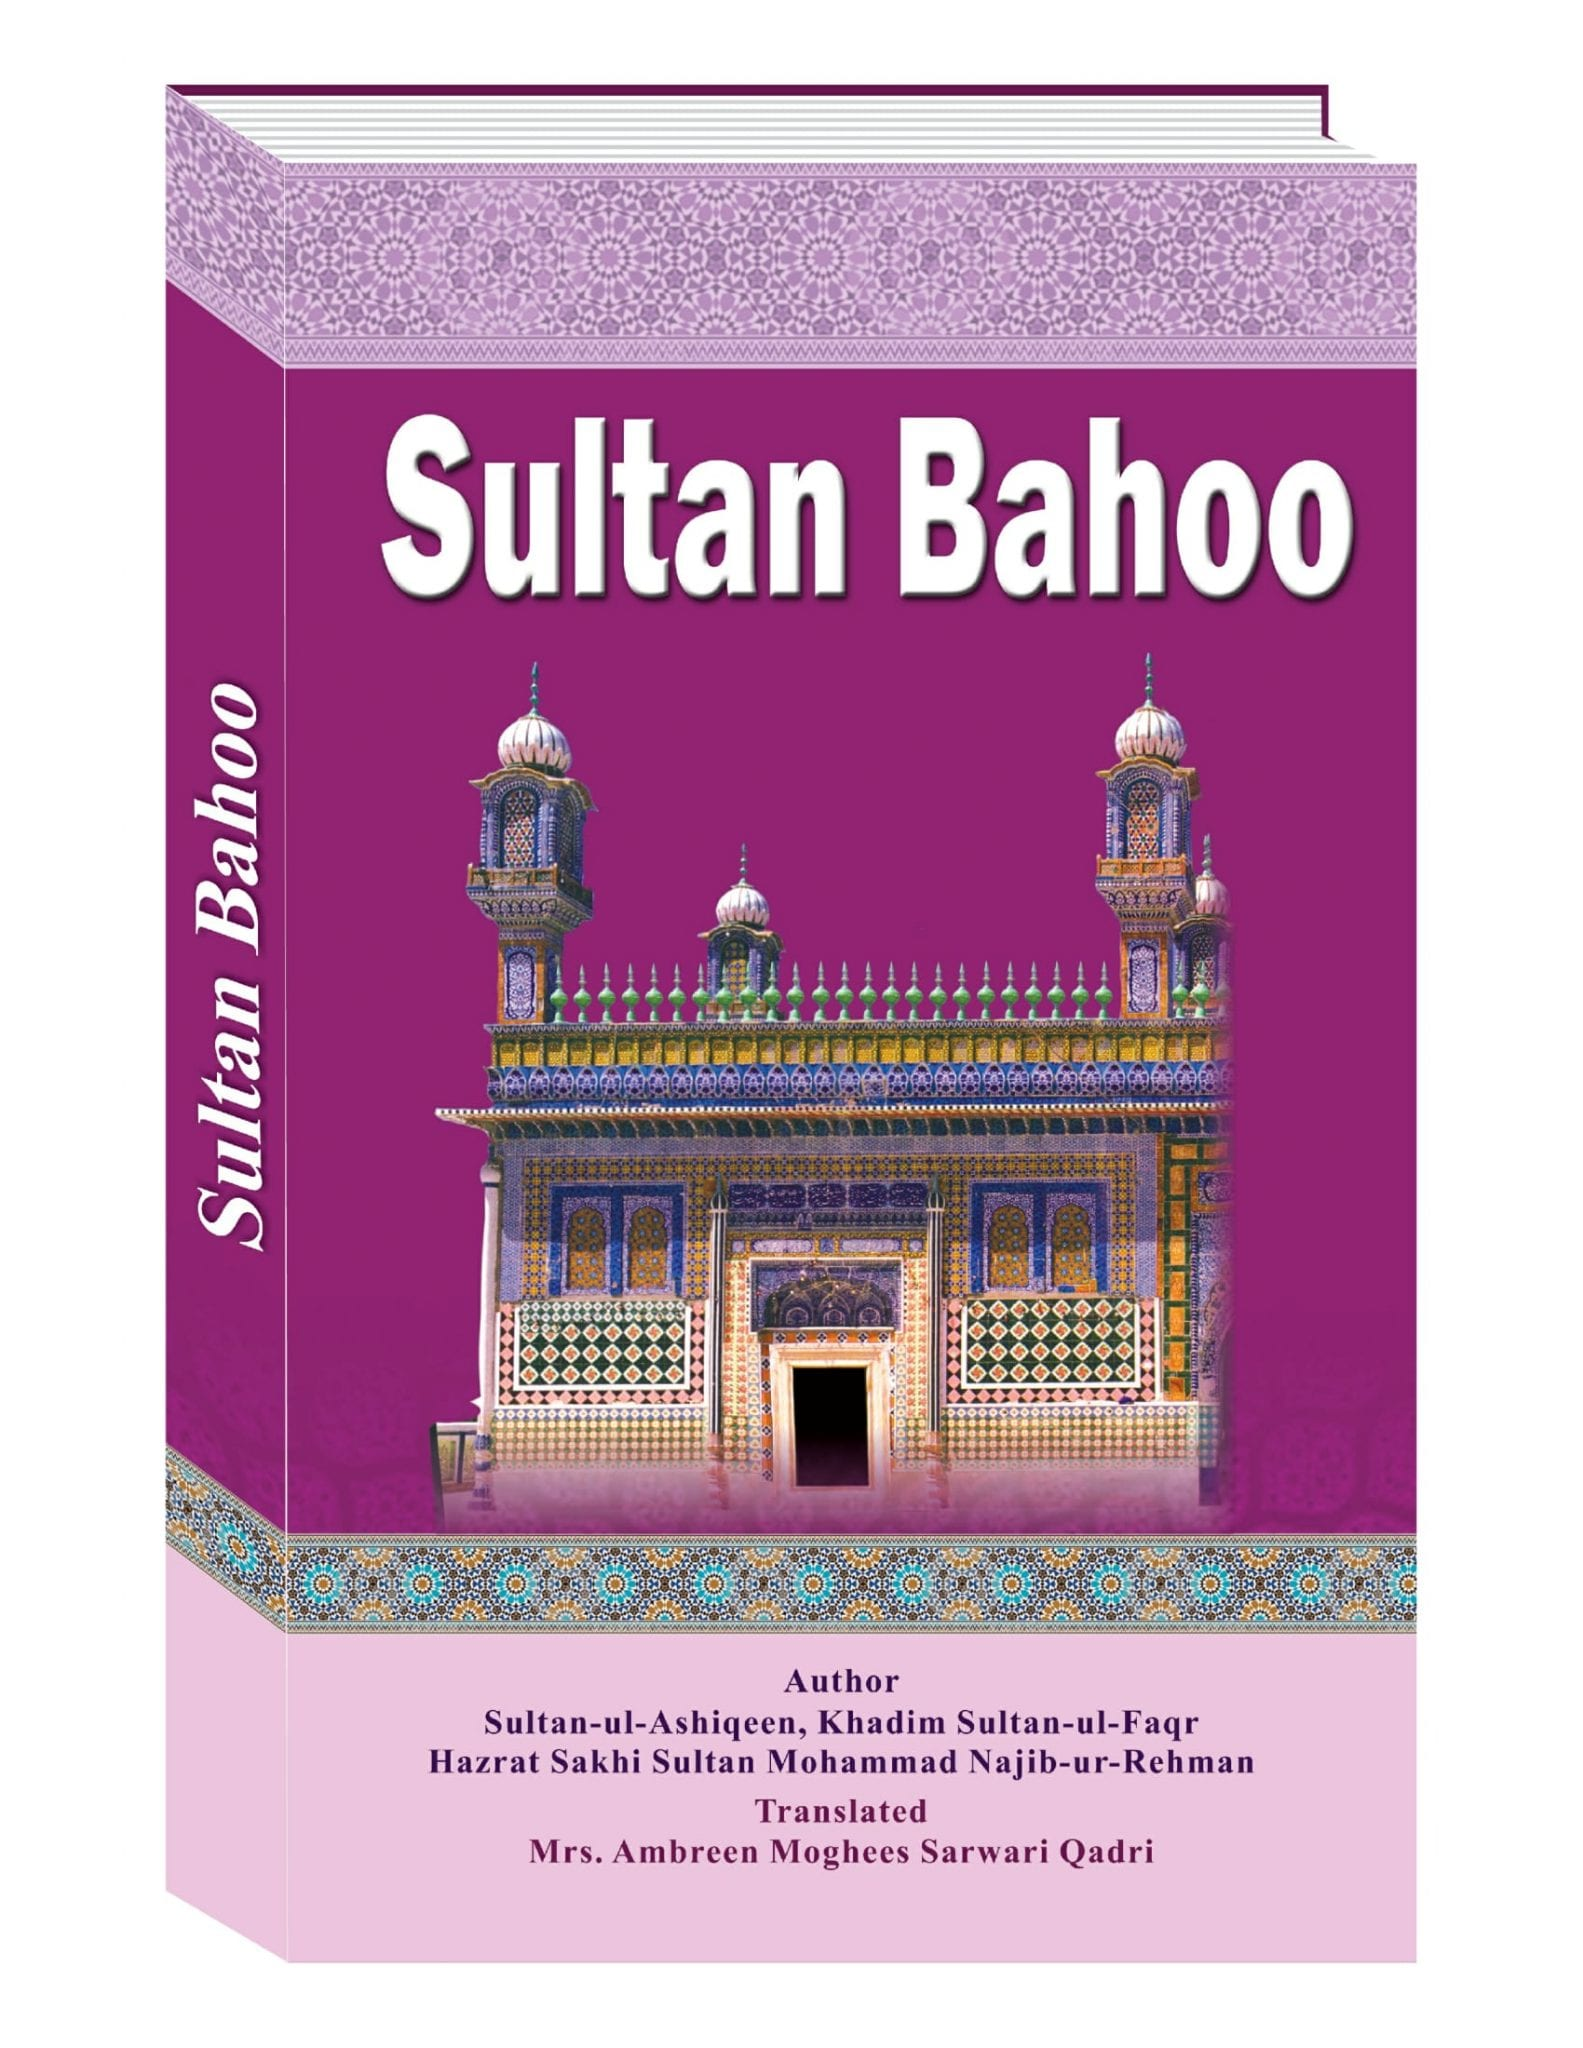 Sultan ul Arifeen Sultan Bahoo Complete Life History in English